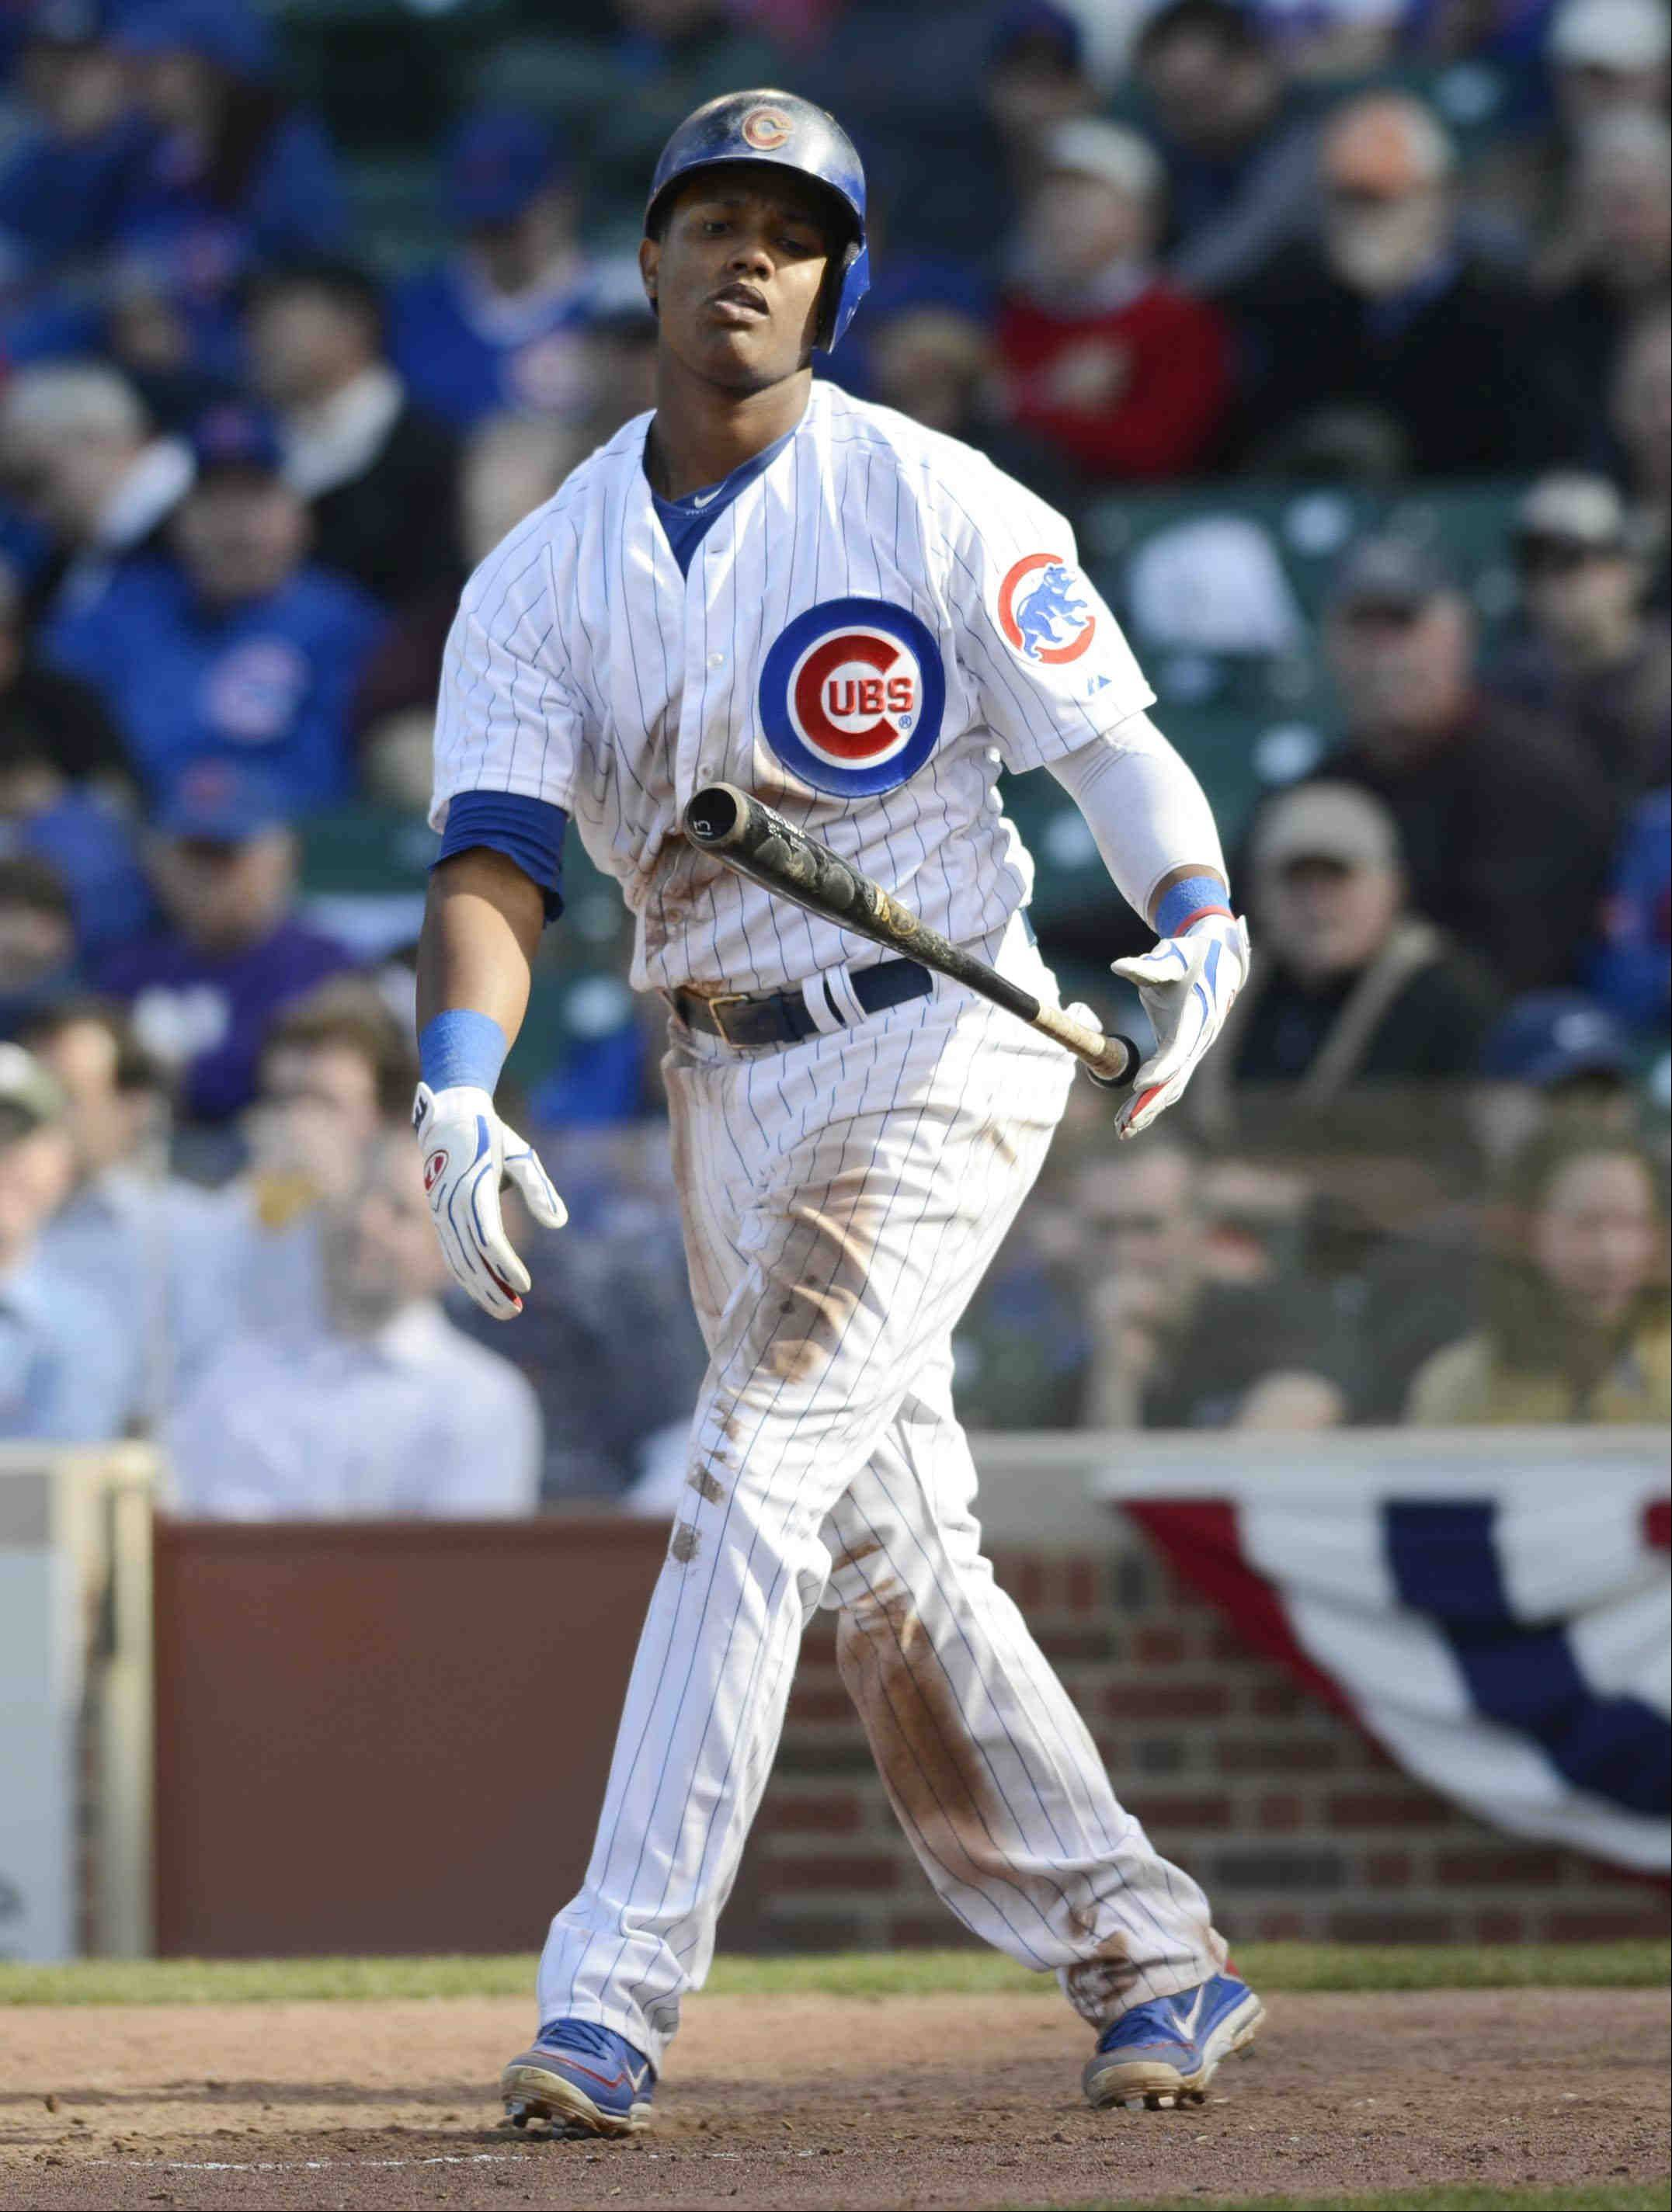 Cubs shortstop Starlin Castro reacts after striking out in late in Monday's Wrigley Field home-opener against Milwaukee.